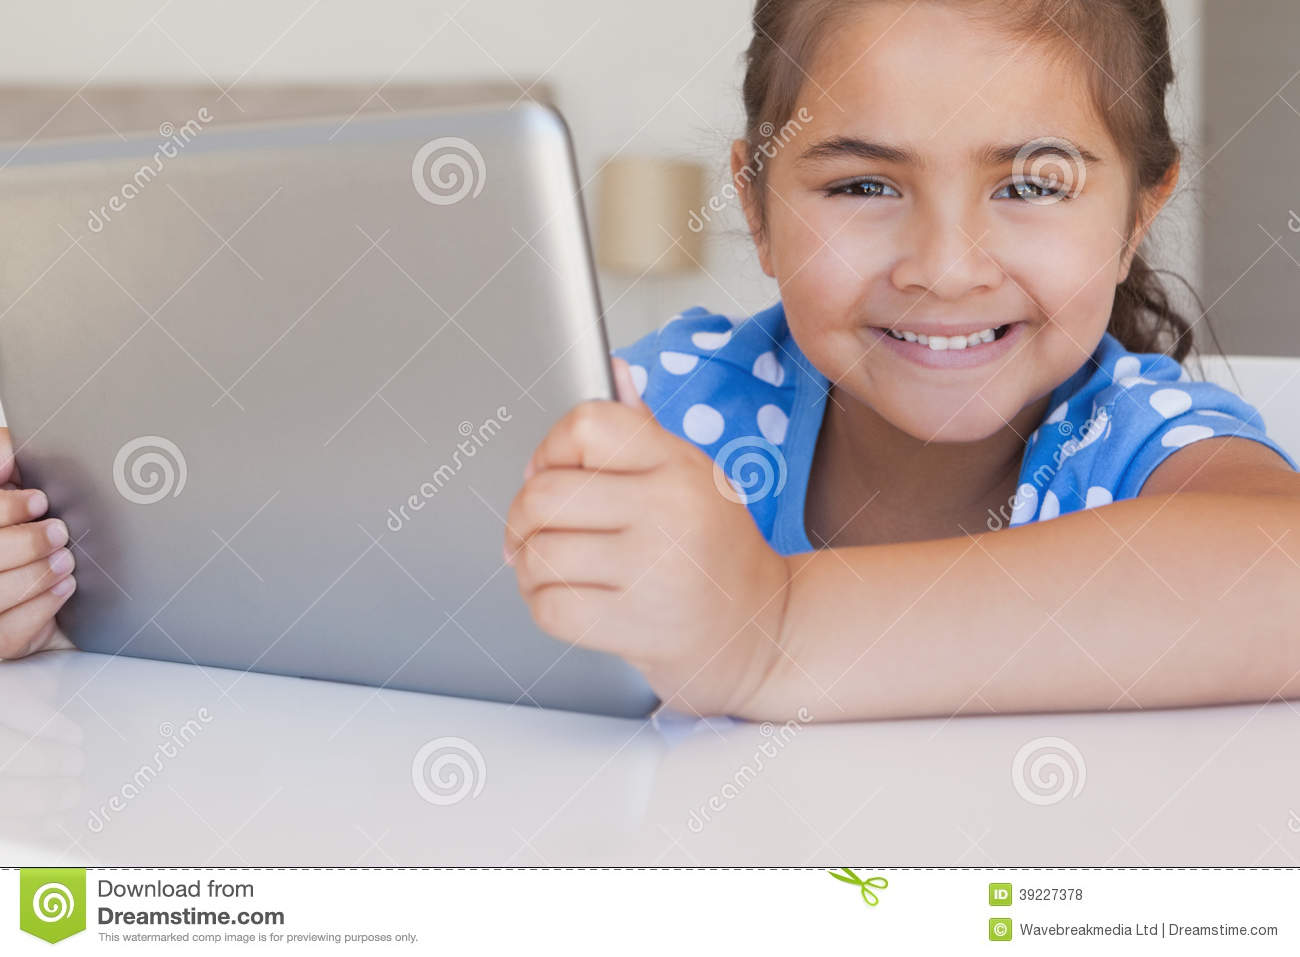 Close-up portrait of a girl using digital tablet